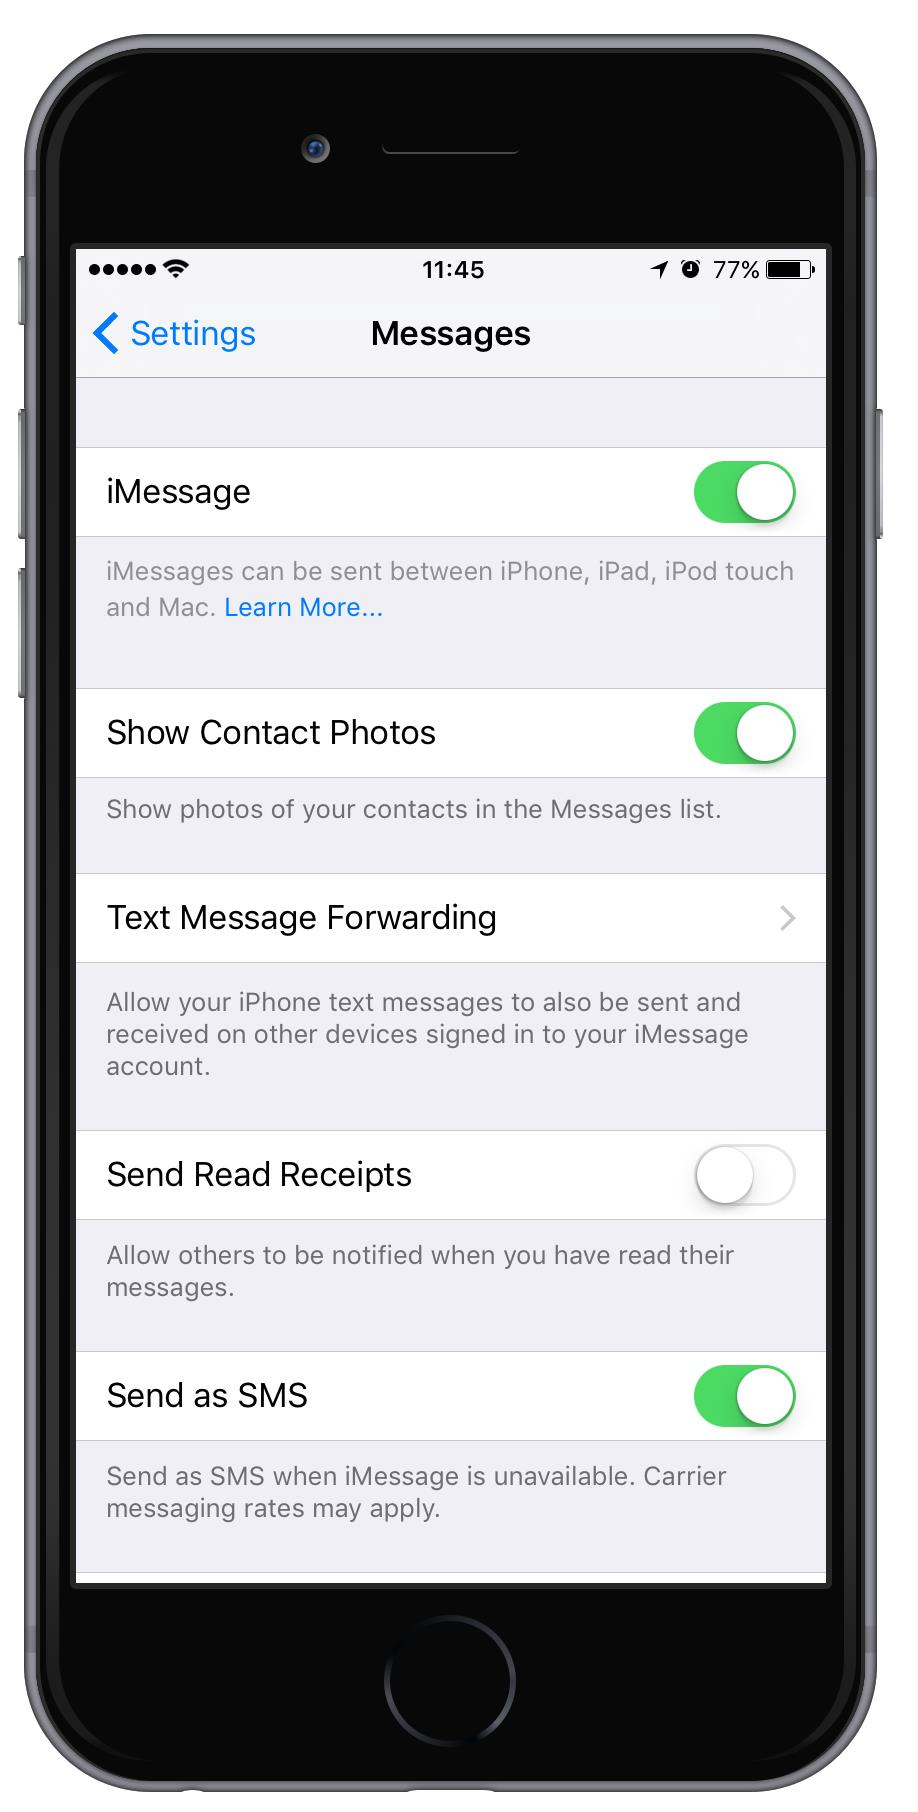 What does send as text mean on iPhone?